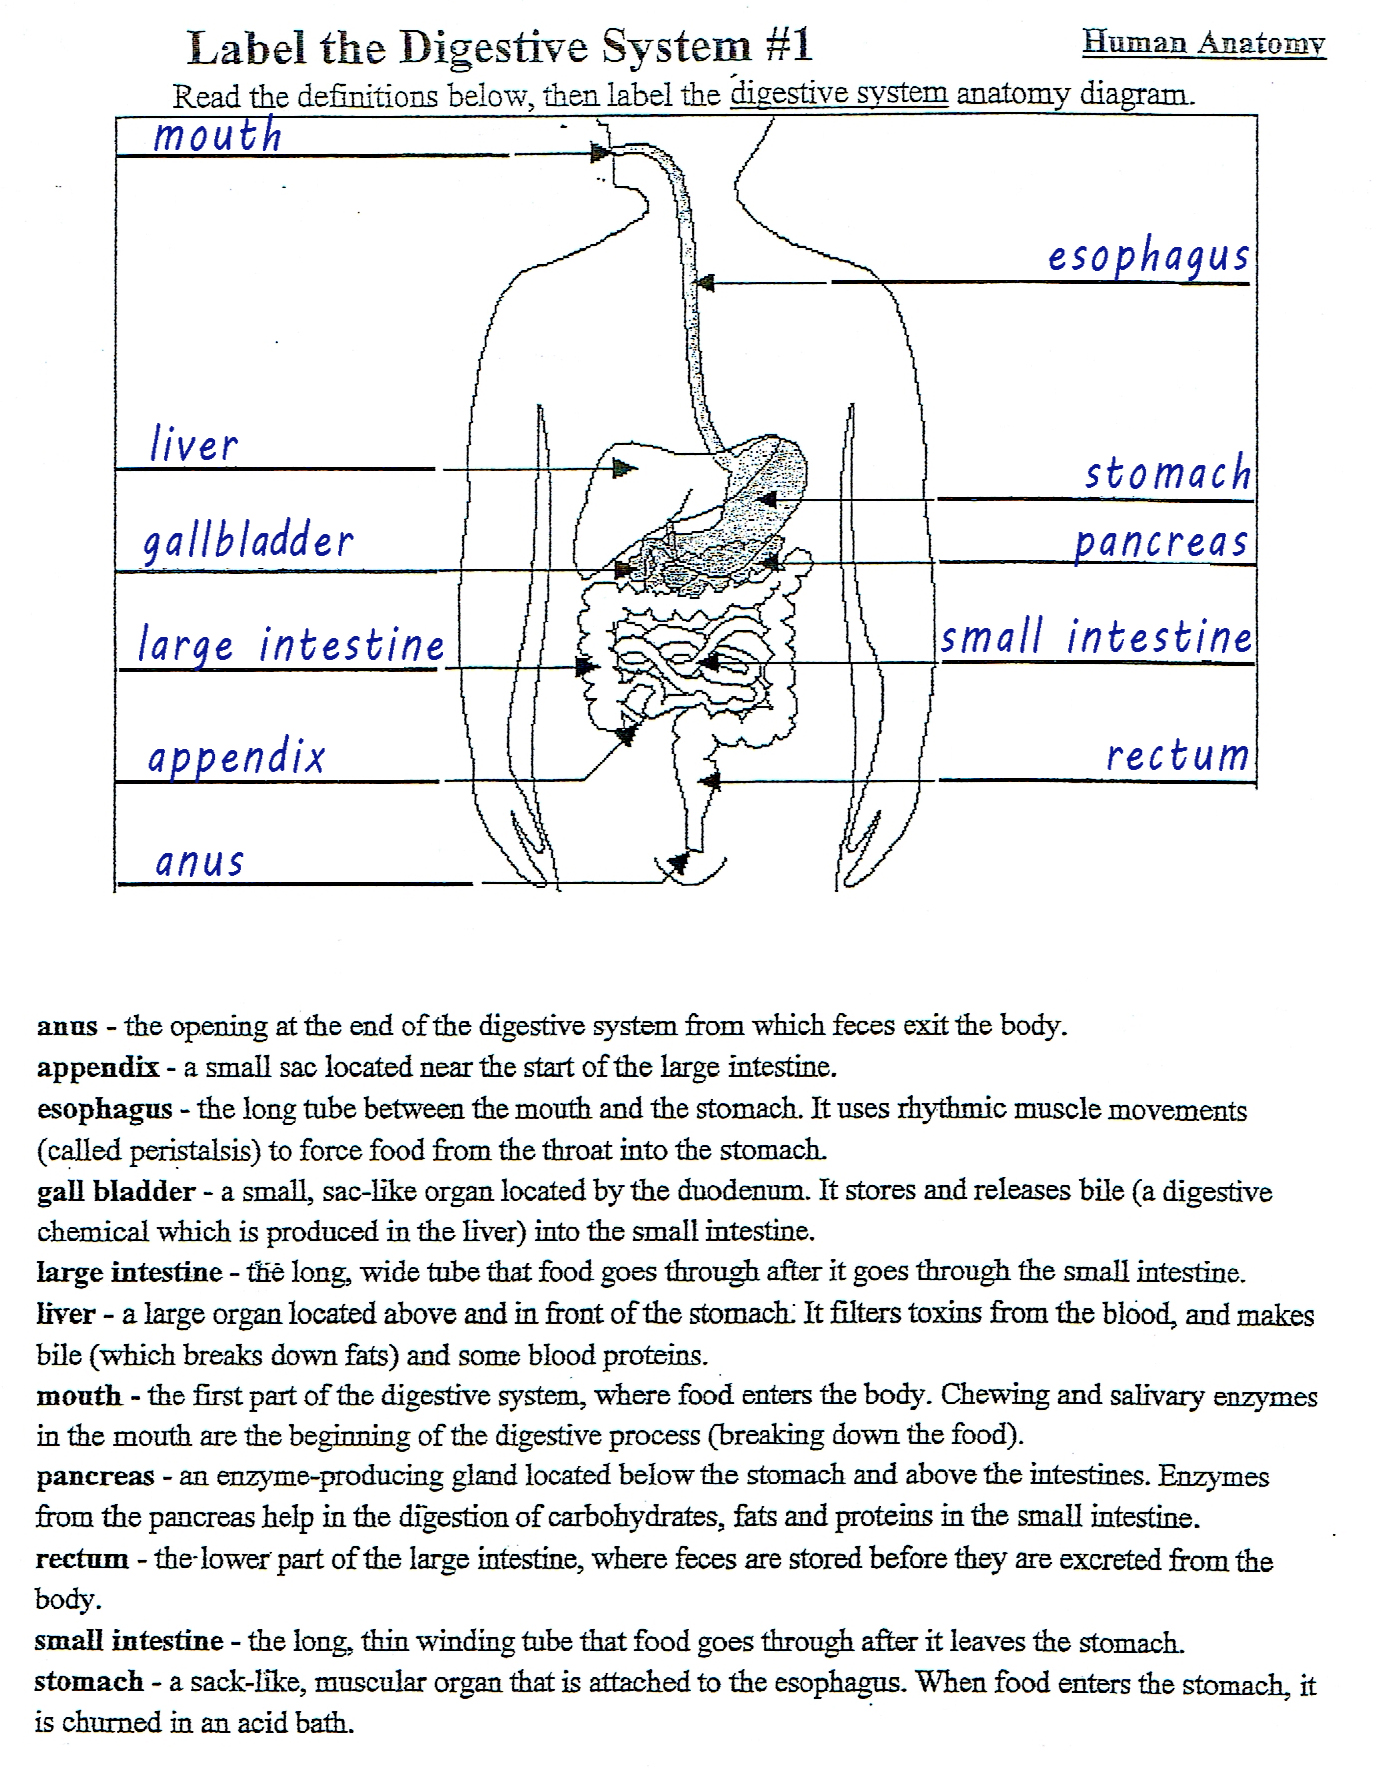 Human Digestive System - Diagram (labelled)